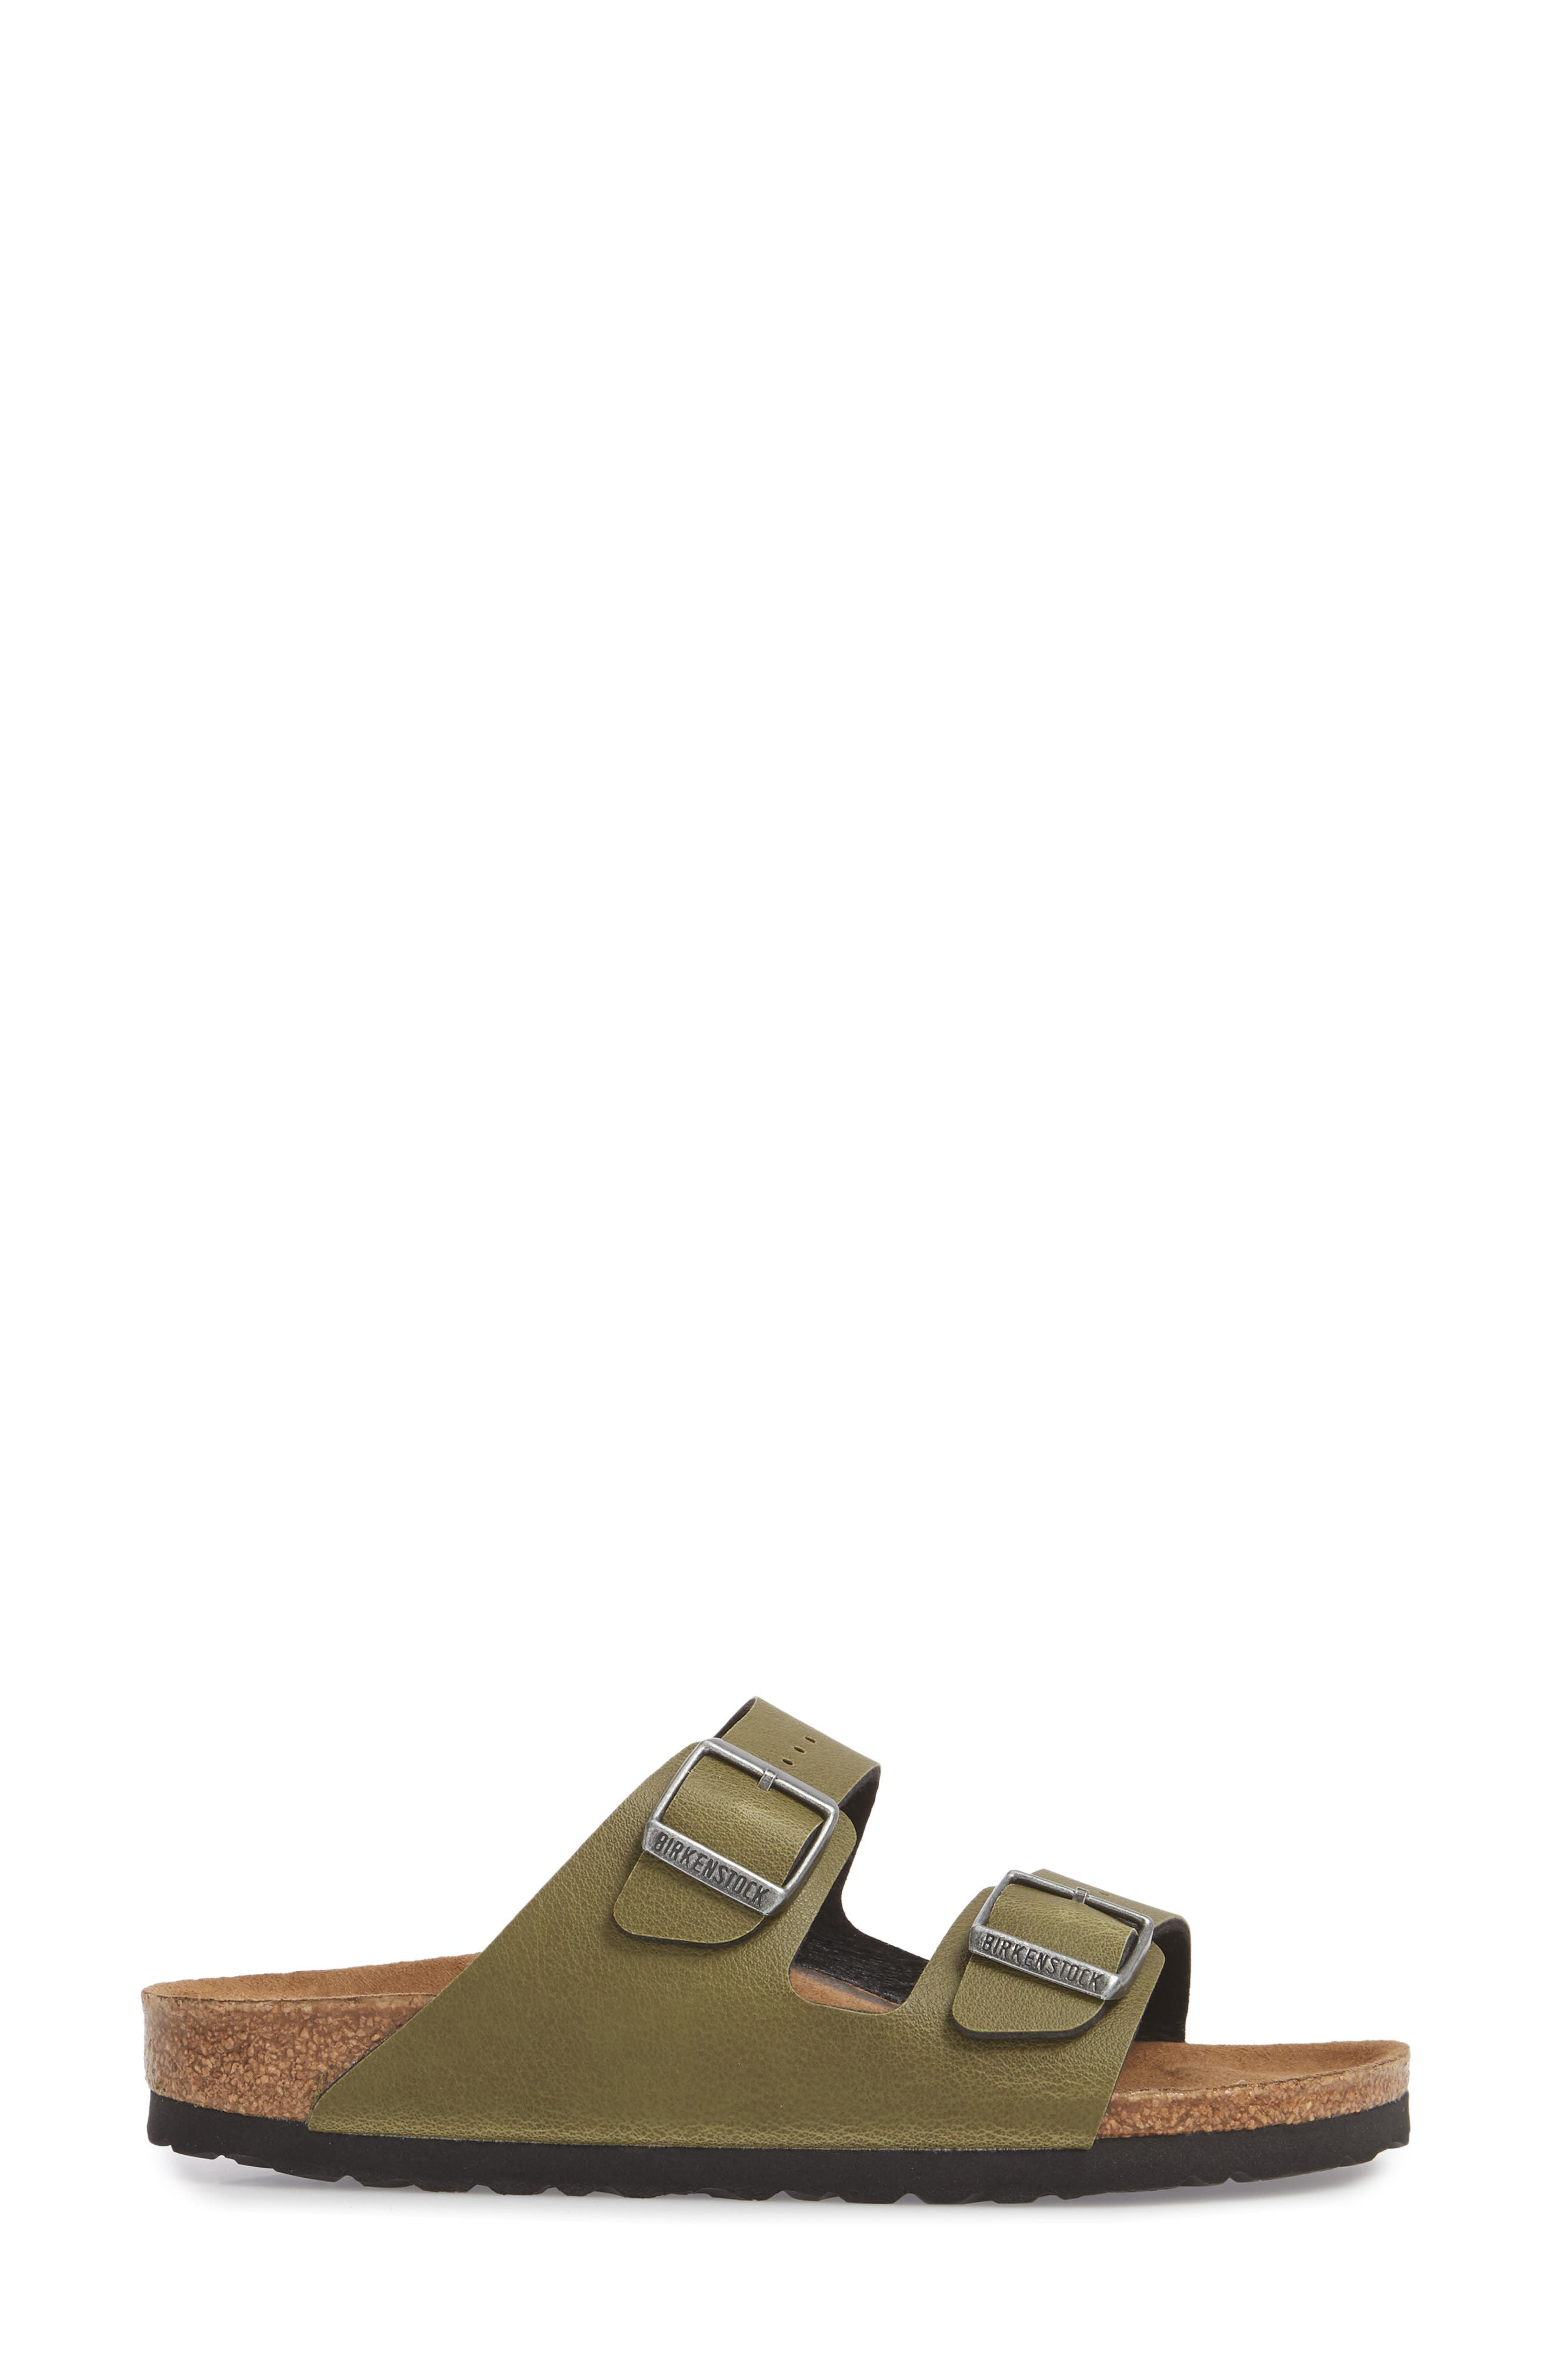 Alternate Image 3  - Birkenstock Arizona Birko-Flor™ Slide Sandal (Women)